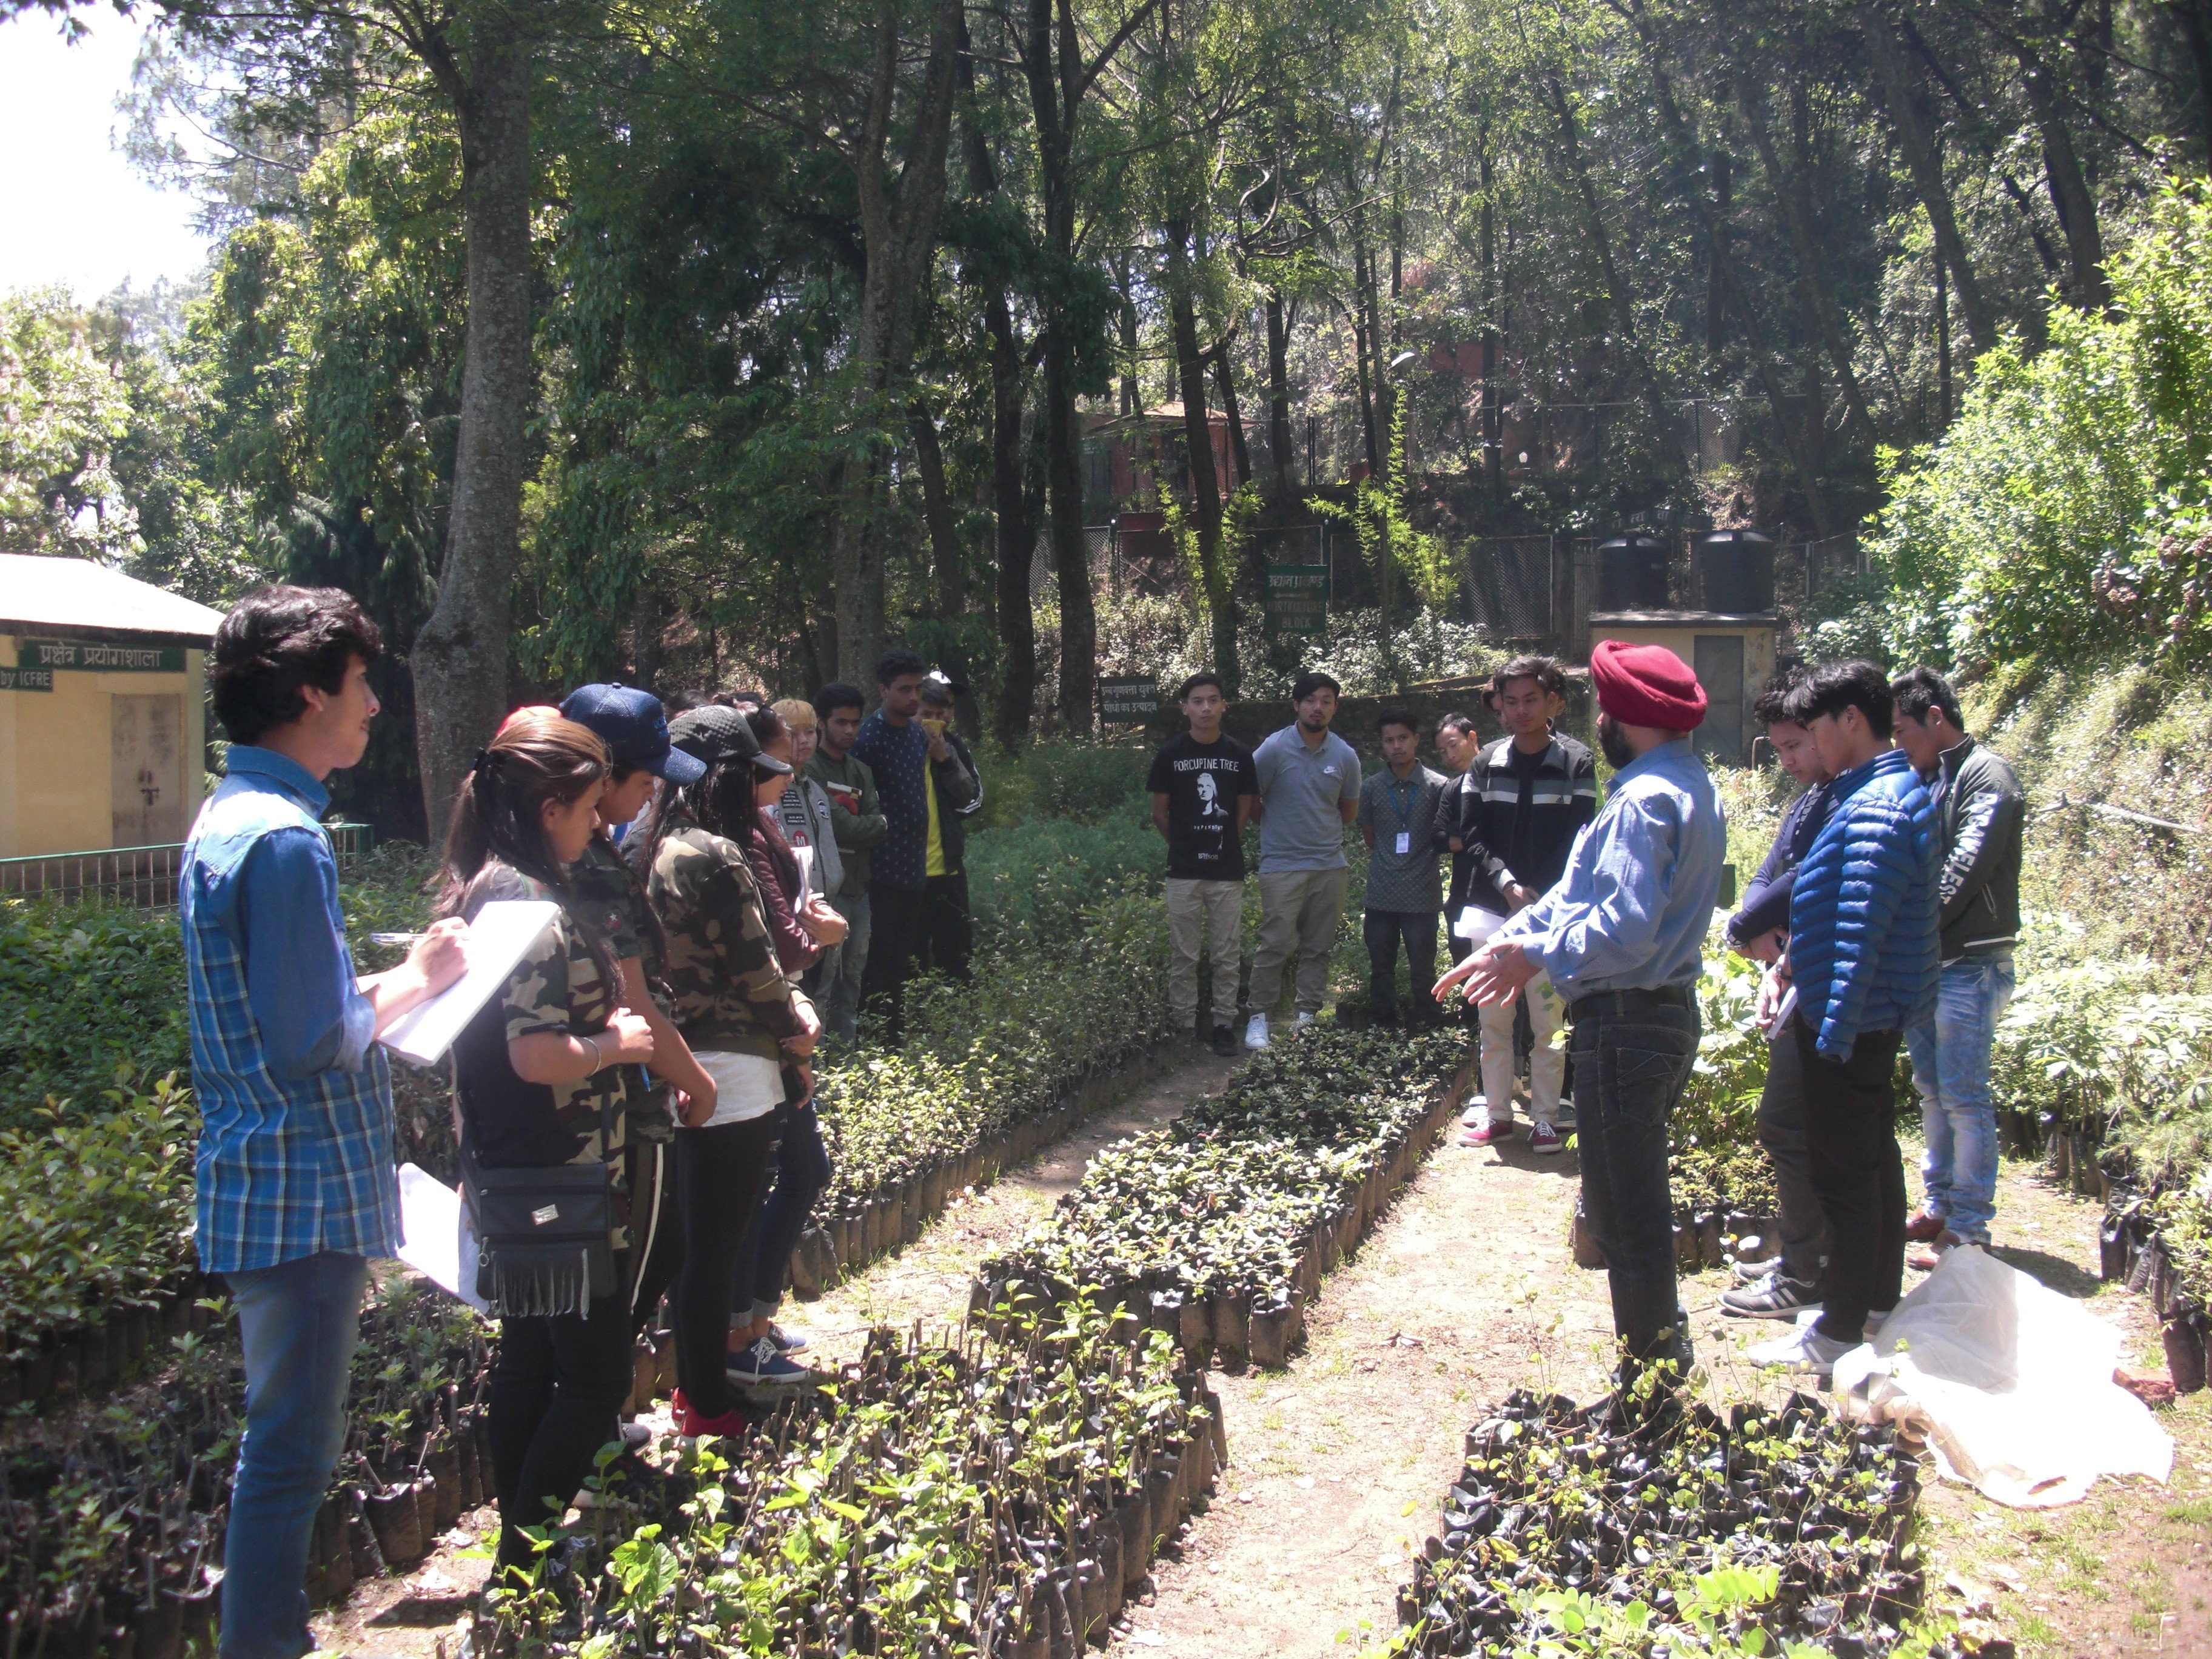 A Professor, Department of Forestry is delivering a lecture on nurseries, forest management, silvicultue and agroforestry, ethanobotany, extension education, medicinal and aromatic plants